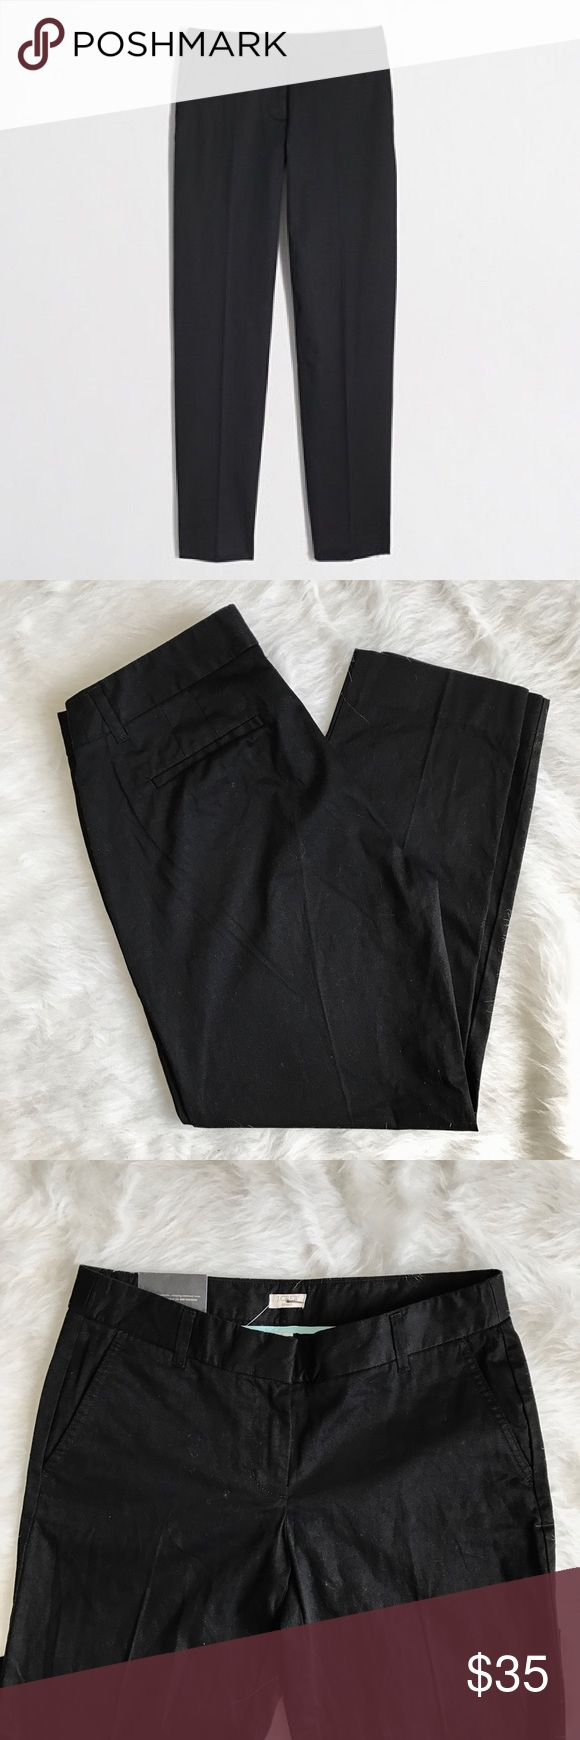 """J. Crew Factory Skimmer Pant in Black Tailored cotton pants from J. Crew Factory. Black. Size 4. NWT. Missing price tag but still has button envelope tag and waist tag. ------------ Cotton with a hint of stretch. Sits just below waist. Fitted through hip and thigh, with a straight, cropped leg. 26"""" inseam. Slant pockets. Machine wash. J. Crew Pants Straight Leg"""